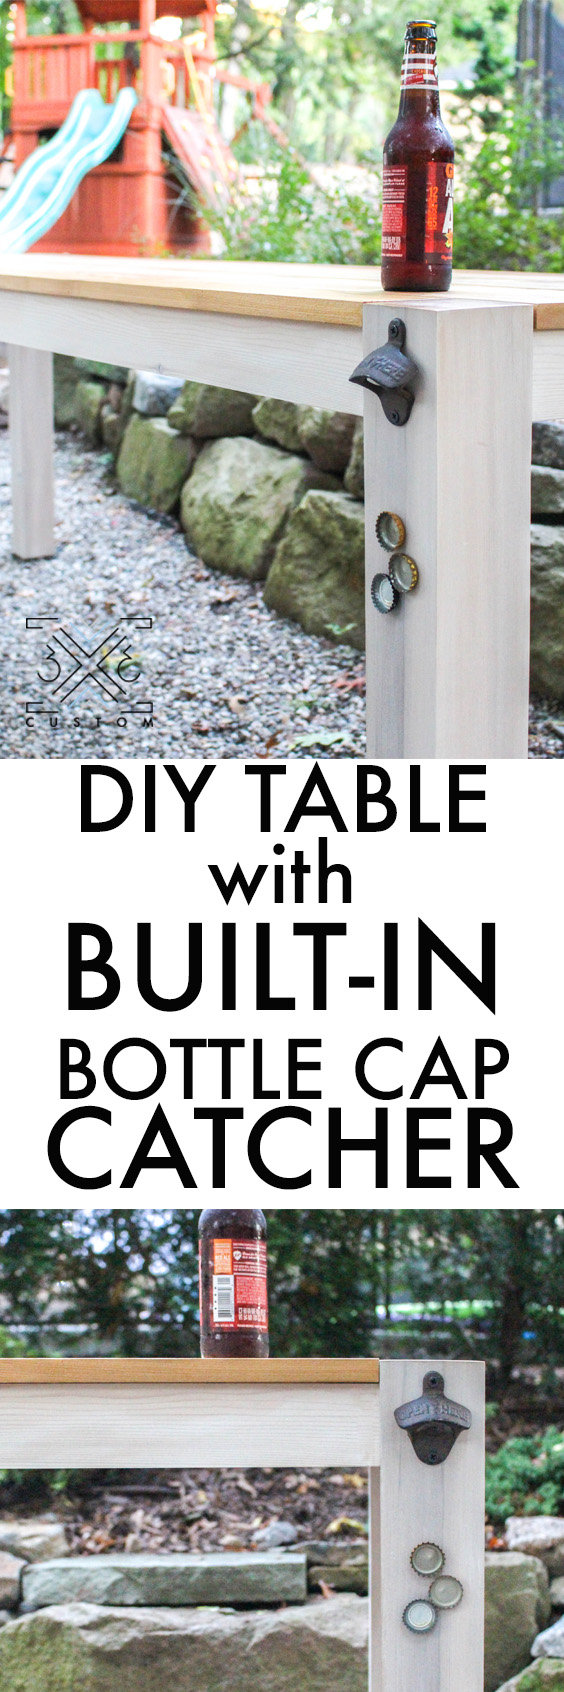 3x3 Custom Outdoor Table with Built-In Bottle Cap Catcher